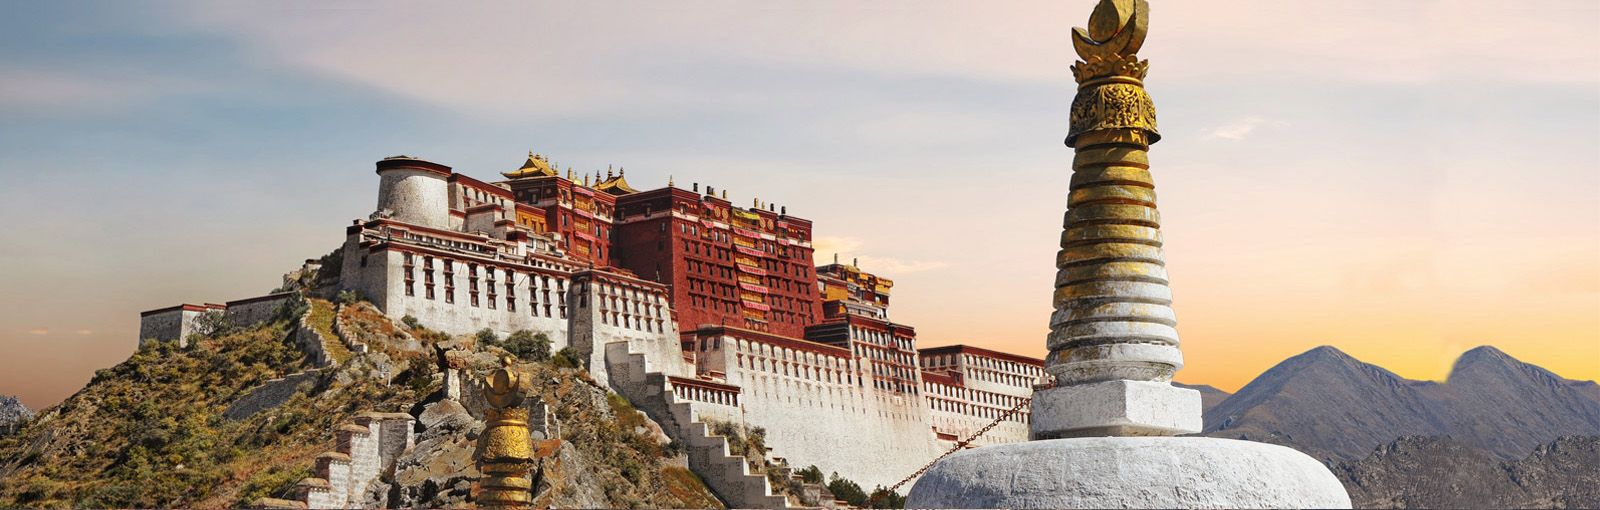 Tibet Group Tour,Lhasa Tour